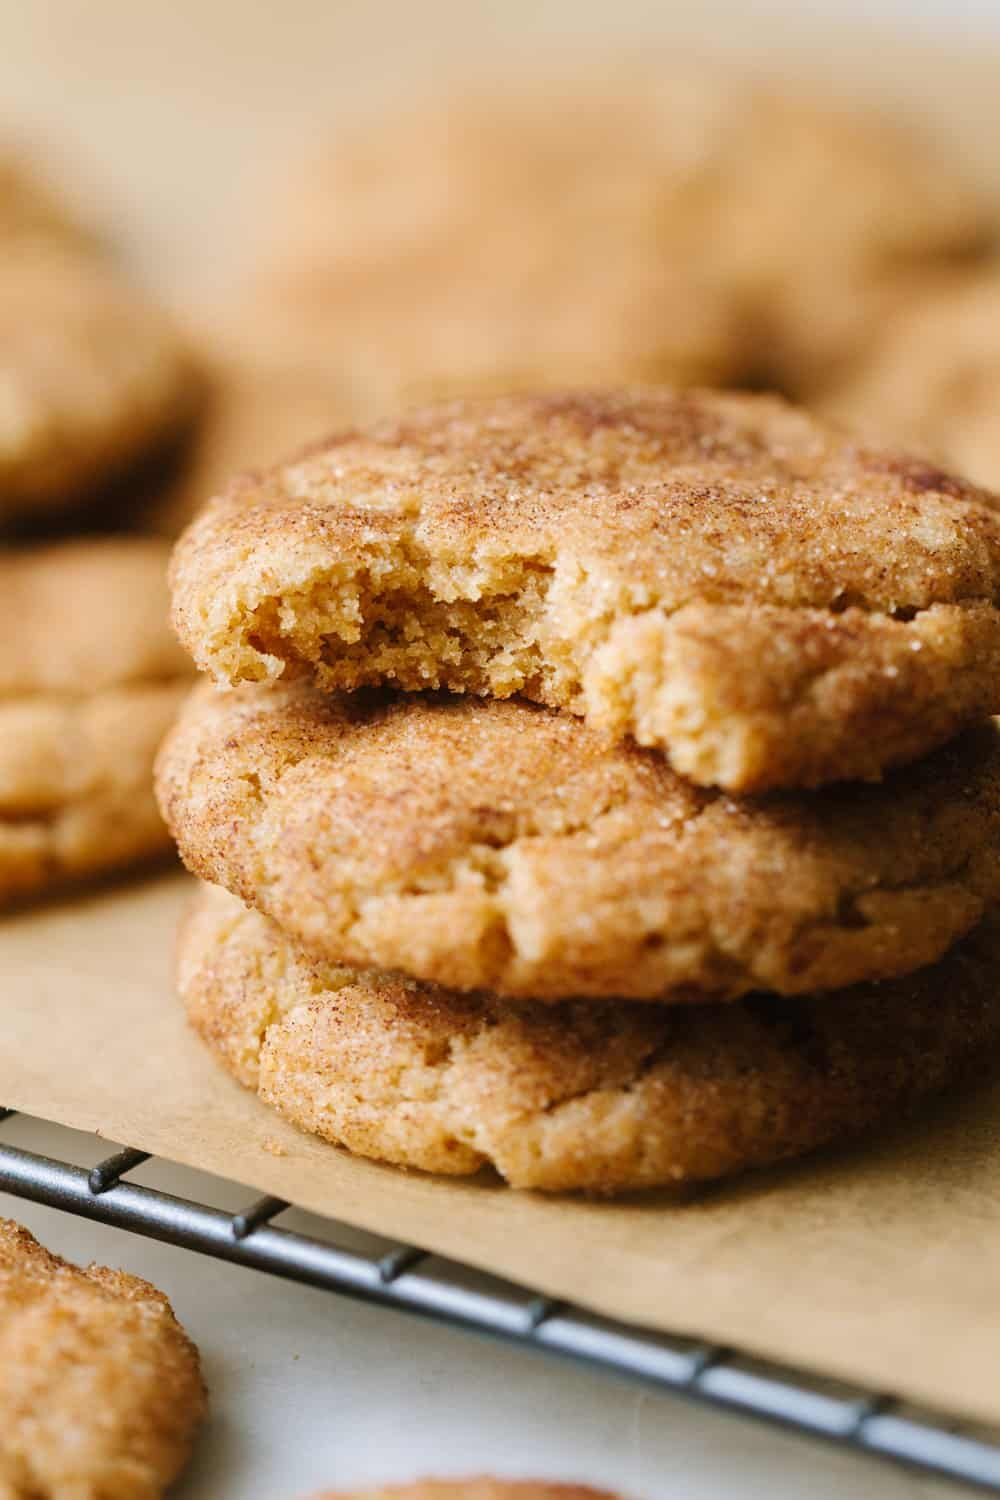 Simple and delicious, these vegan snickerdoodles, rolled